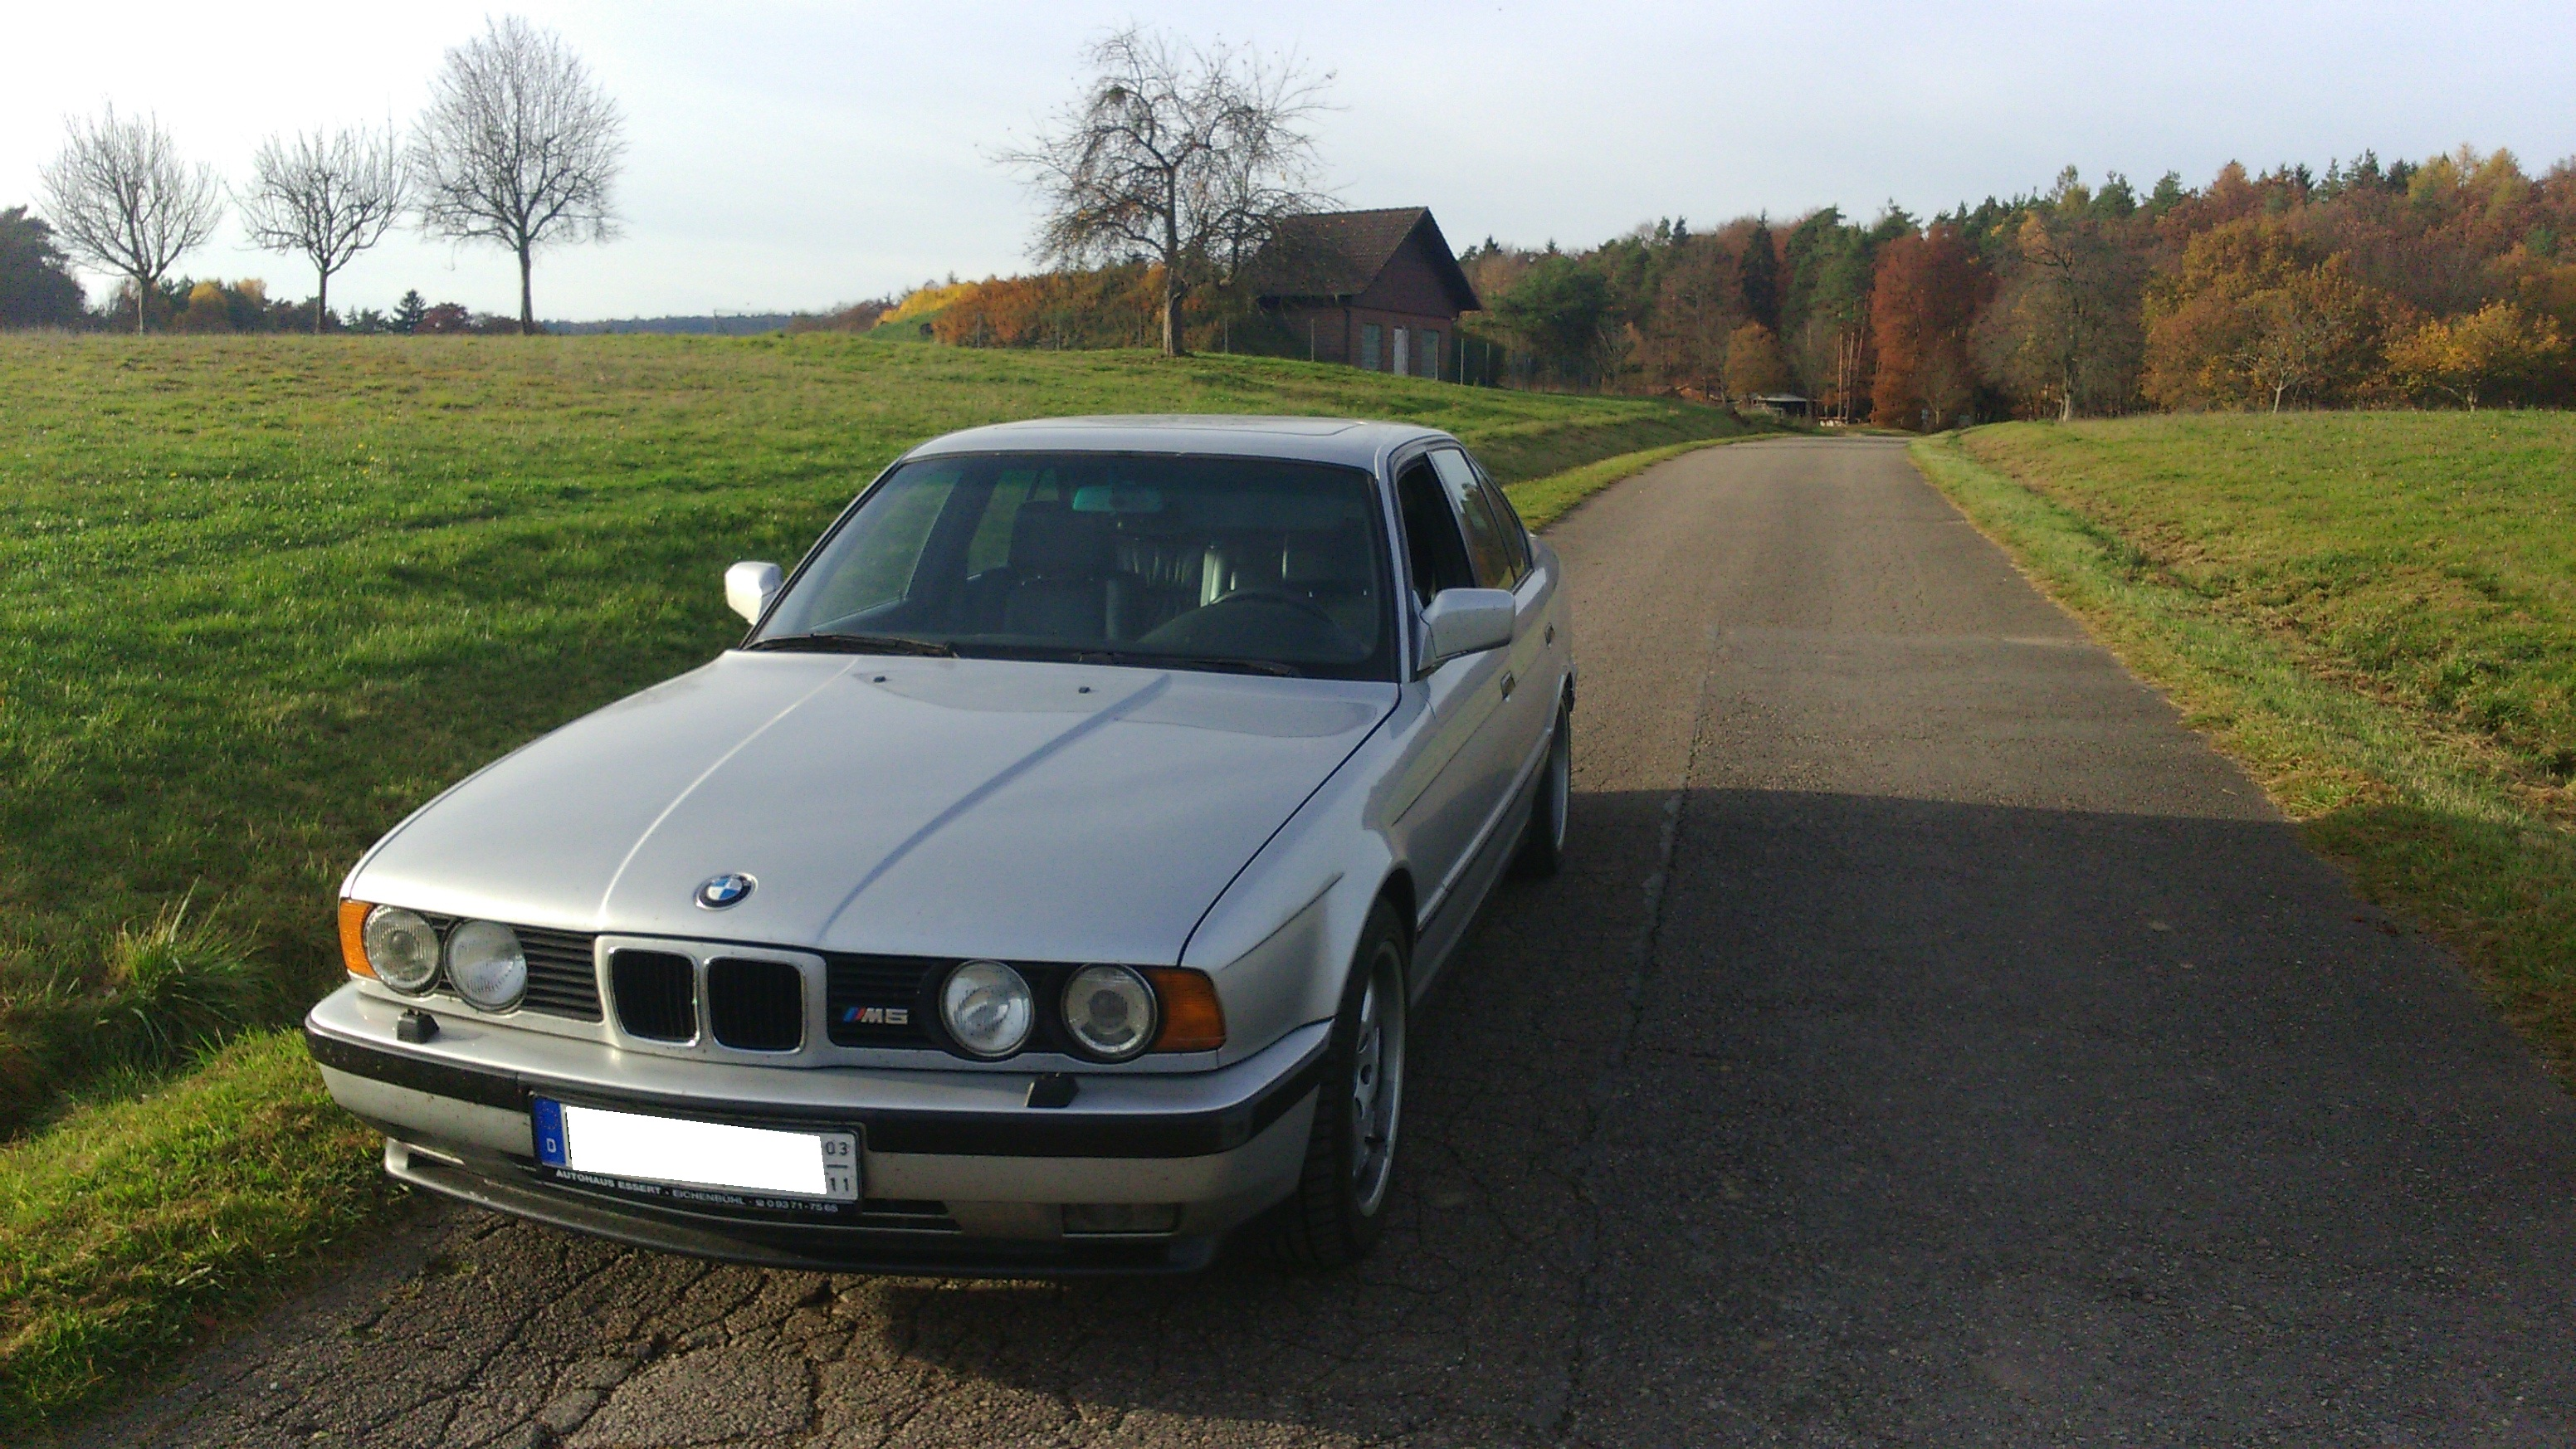 E34 buyers advice and engine guide....Ohh this is a long one